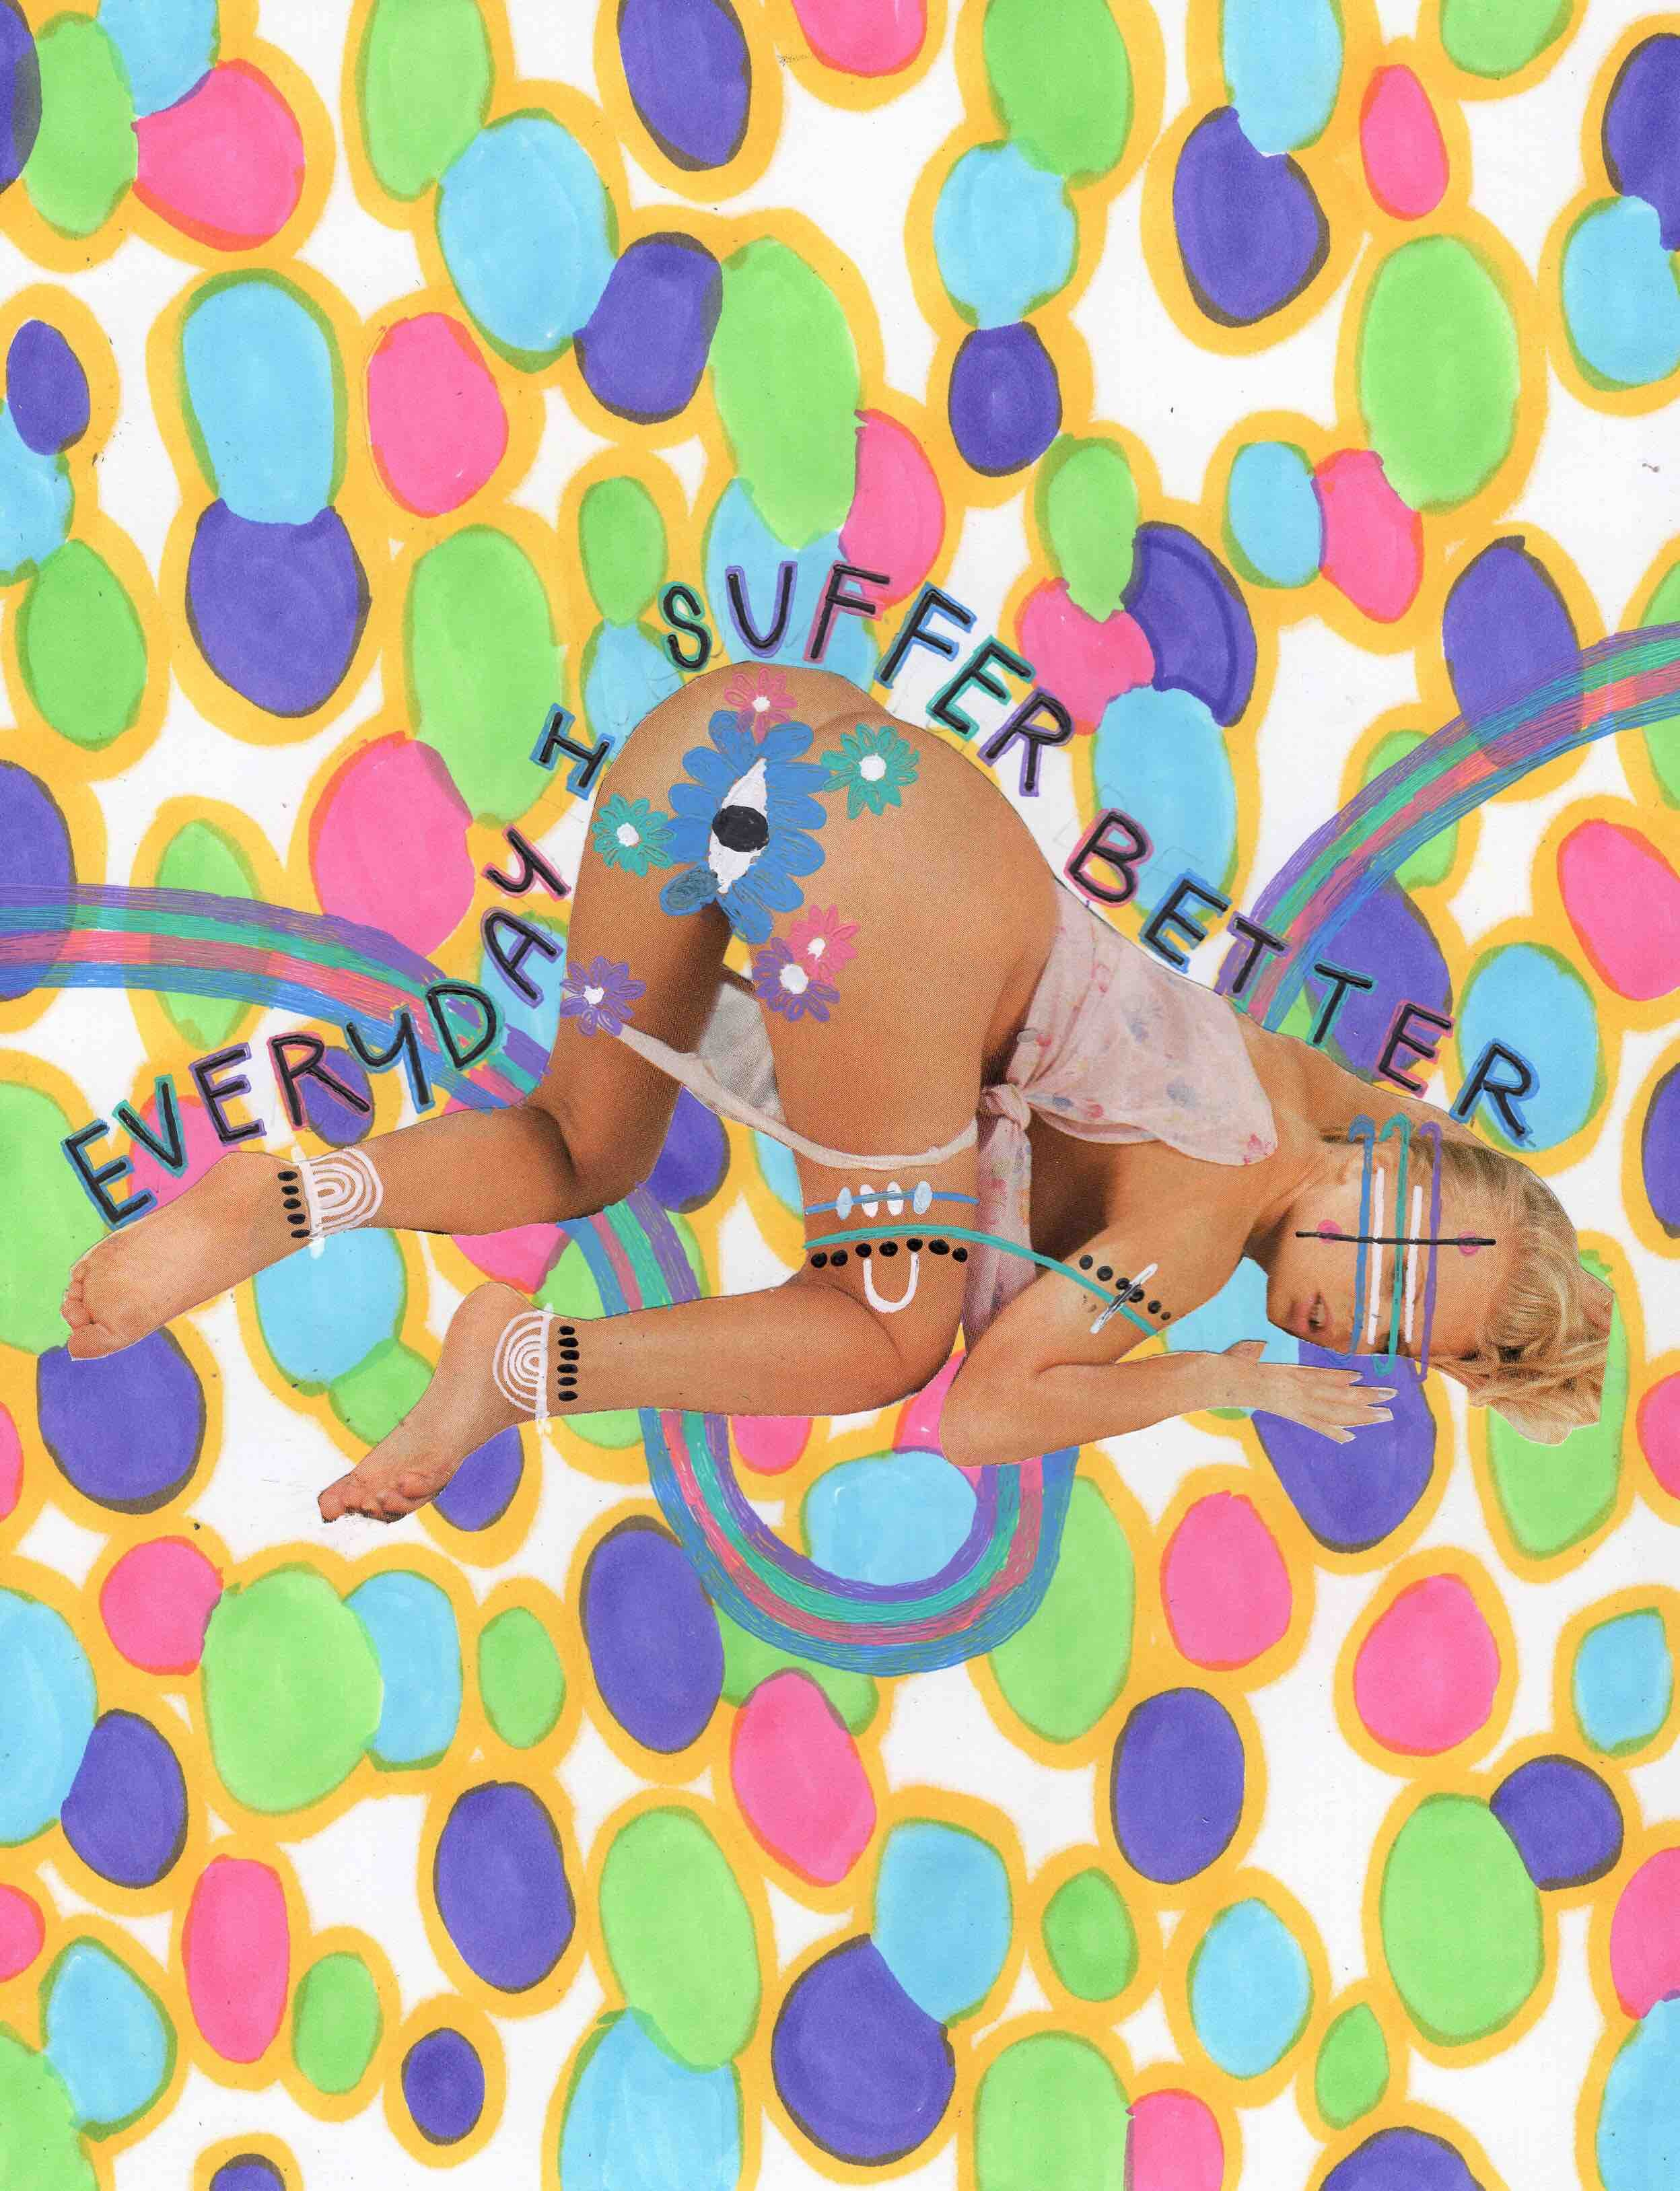 'Suffer Better' by Sarah Barnfart